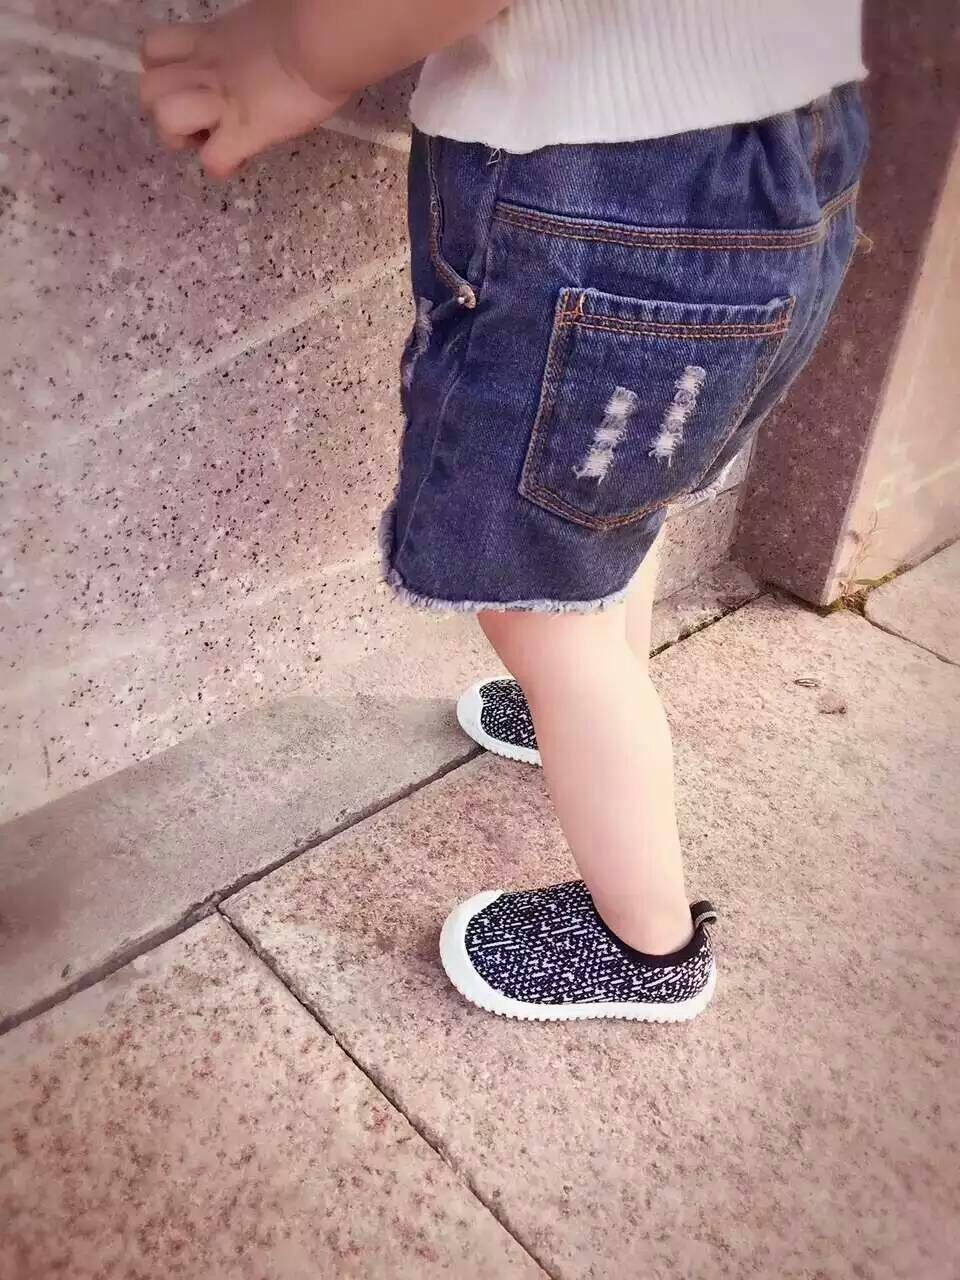 17 Children Shoes kids Sandals soft air mesh casual sport shoes baby boys girls sandals breathable running sneakers size 5-12 10